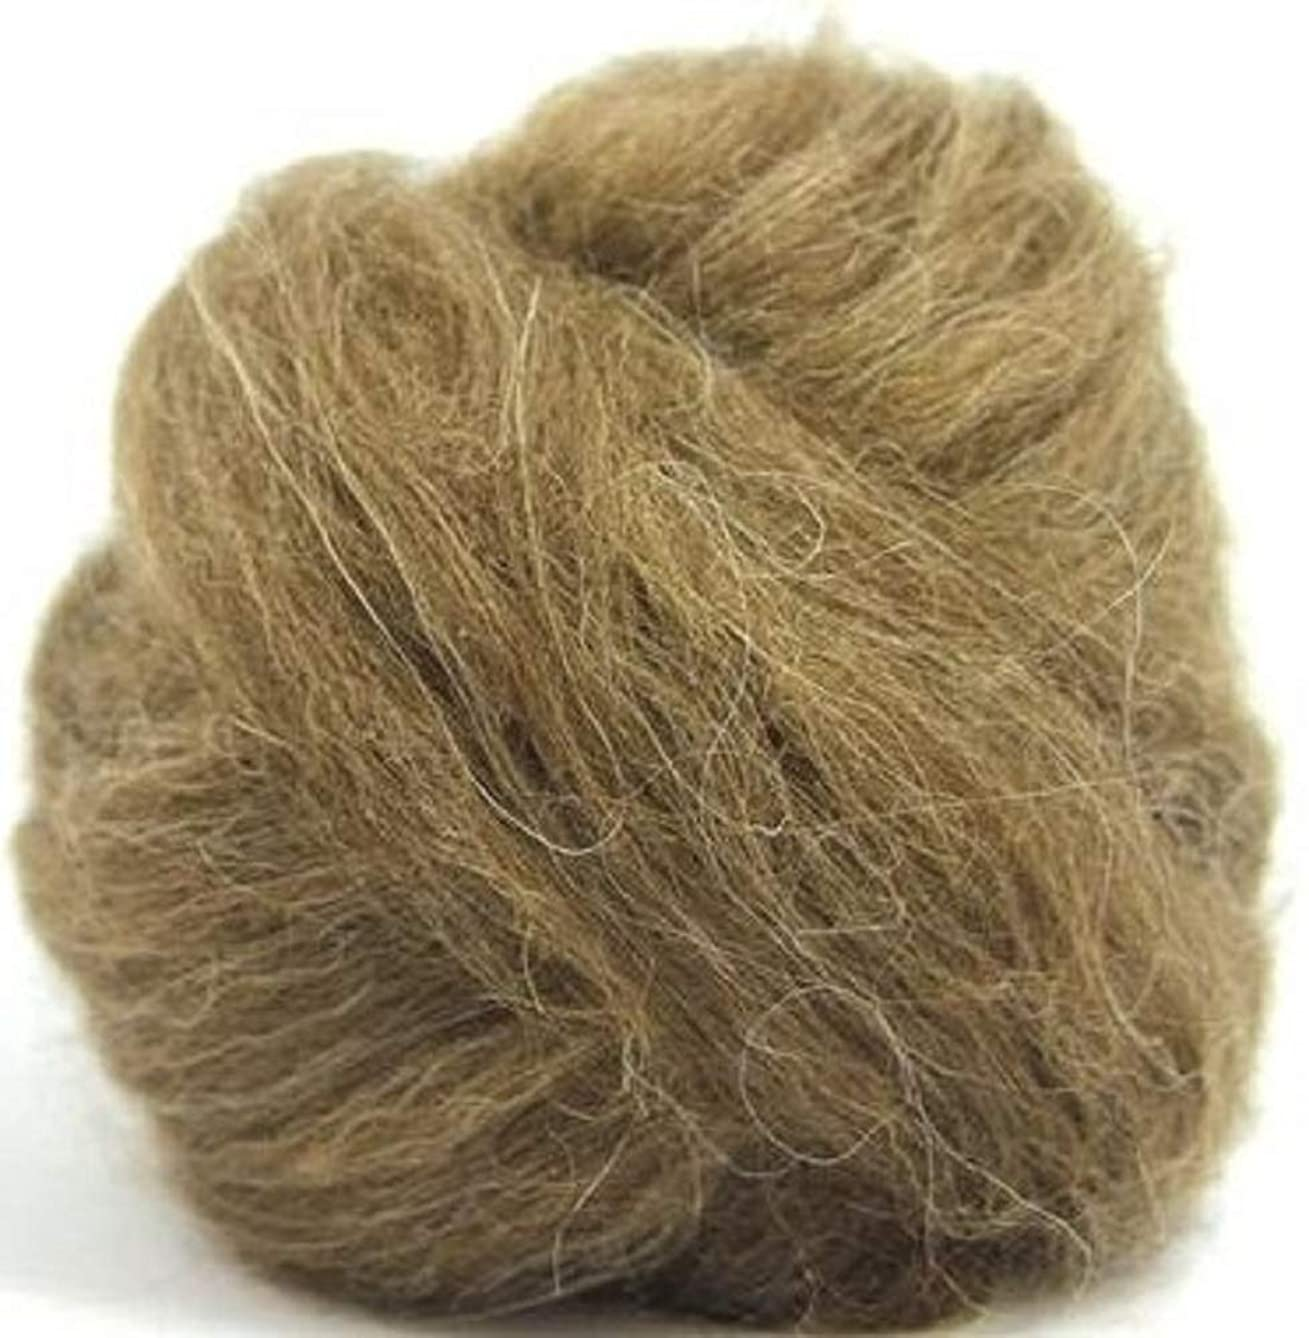 4 oz Paradise Fibers Icelandic Wool Top - Brown - Perfect for Woolen Yarn & Needle Felting